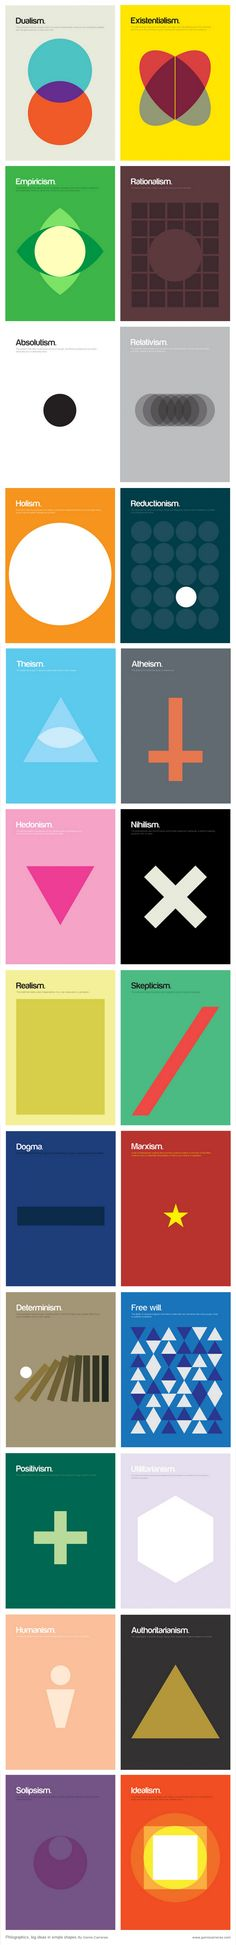 Philographics •• Philosophy Infographic • Great Ideas in Simple Shapes | Genis Carreras, 2015.